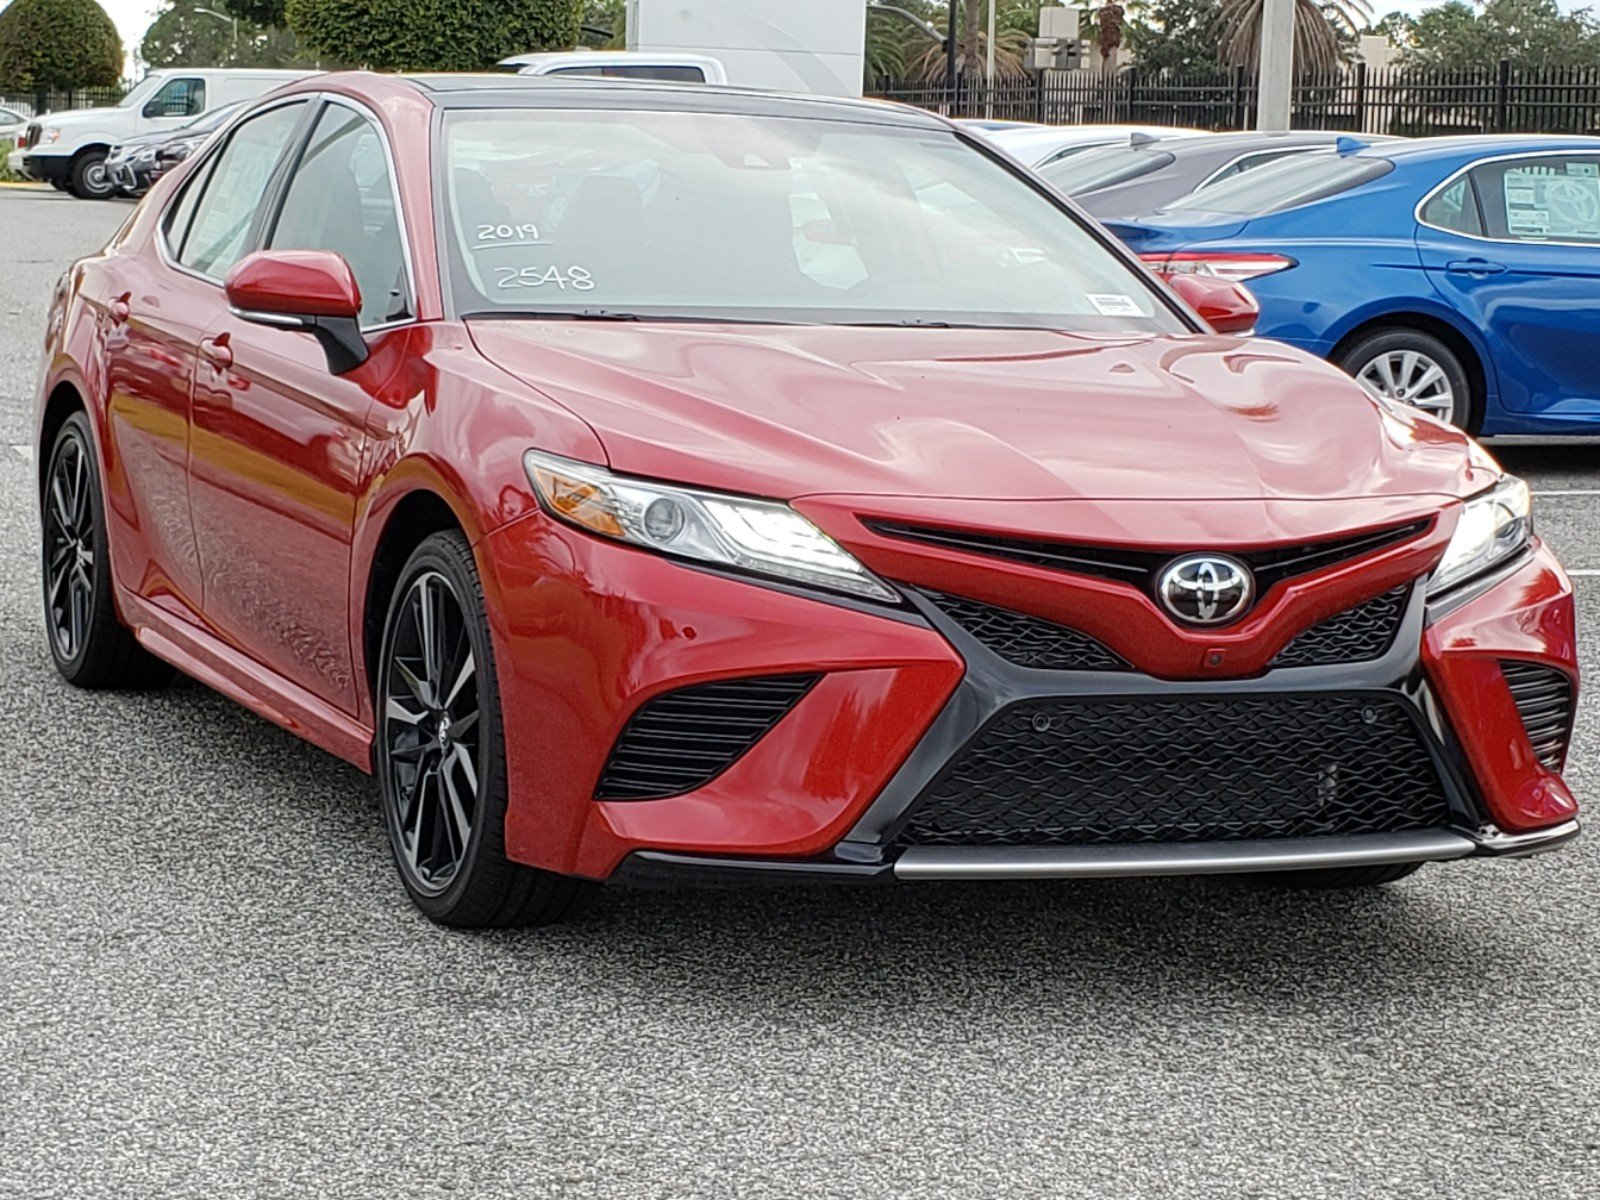 New 2019 Toyota Camry Xse 4dr Car In Orlando 9250013 Toyota Of